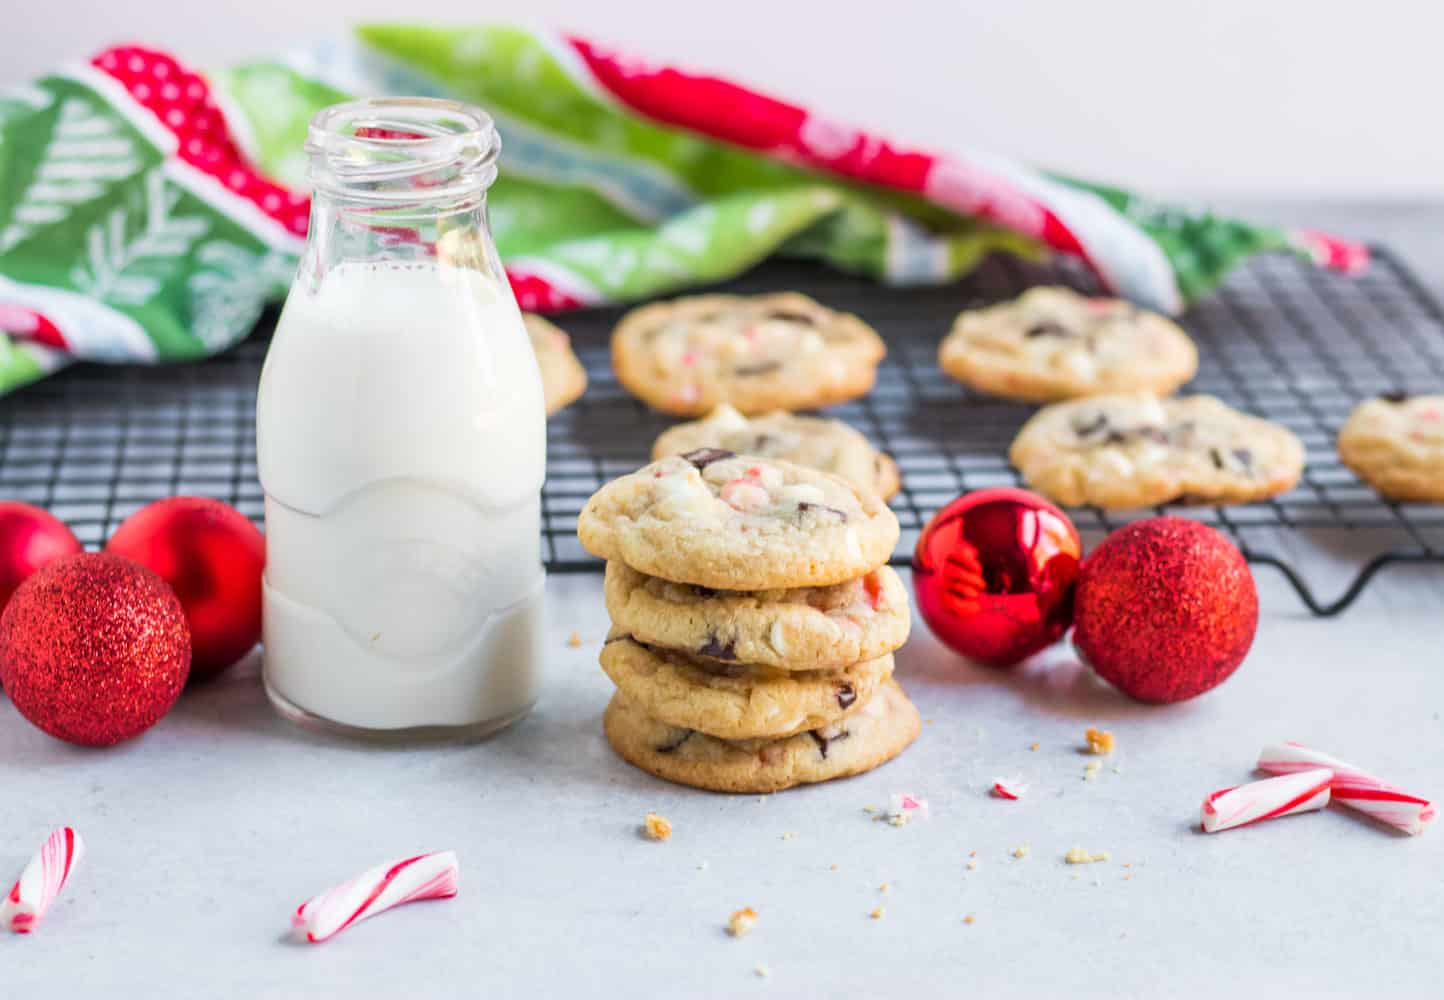 Peppermint Chip Cookies with white chocolate and dark chocolate chips as well as crushed up candy canes